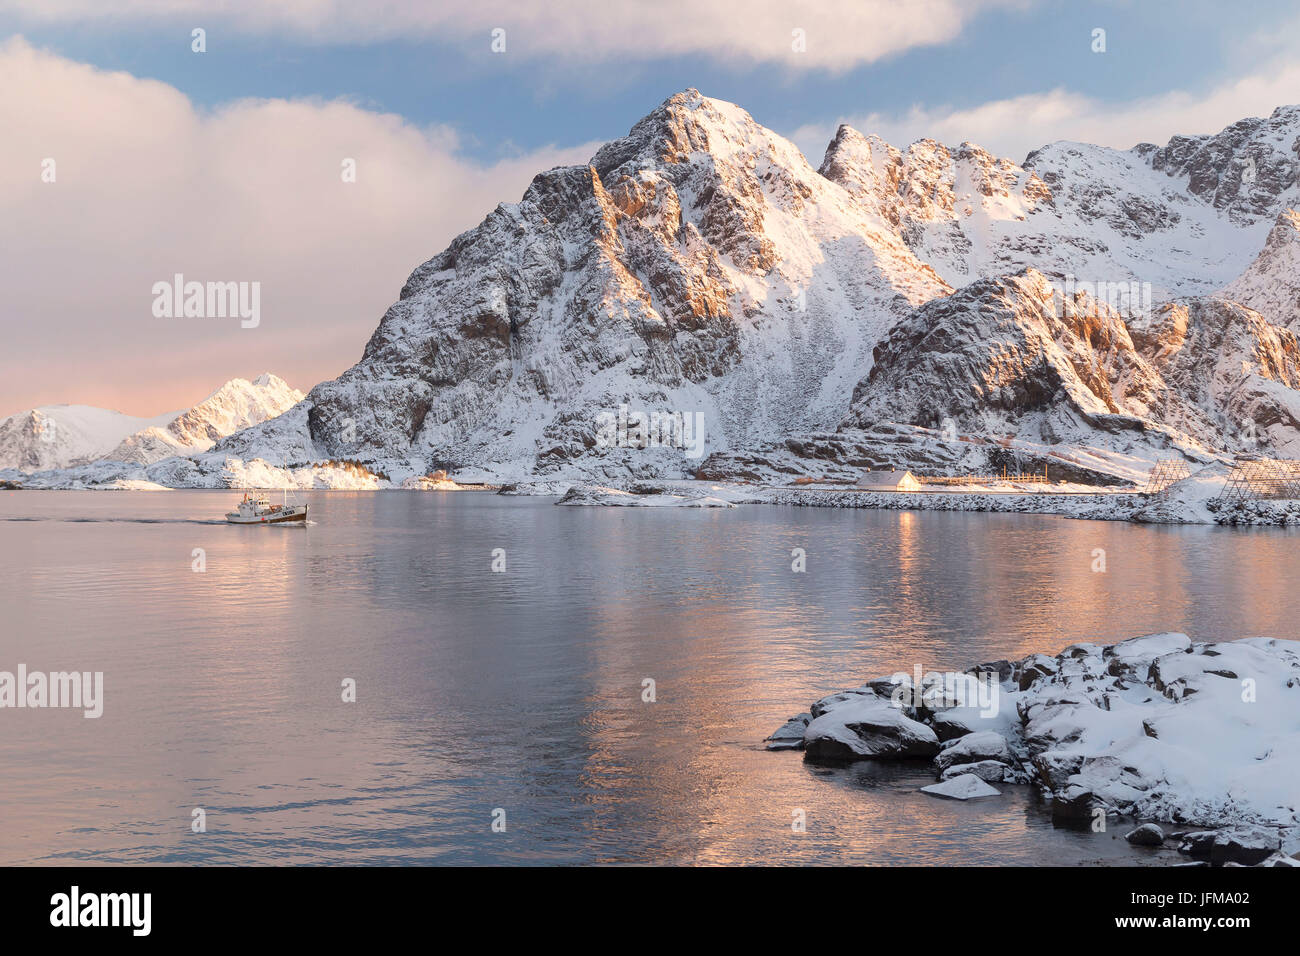 Snowy mountains edging the icy waters of Henningsvær Fishing village, Lofoten Islands, Norway - Stock Image